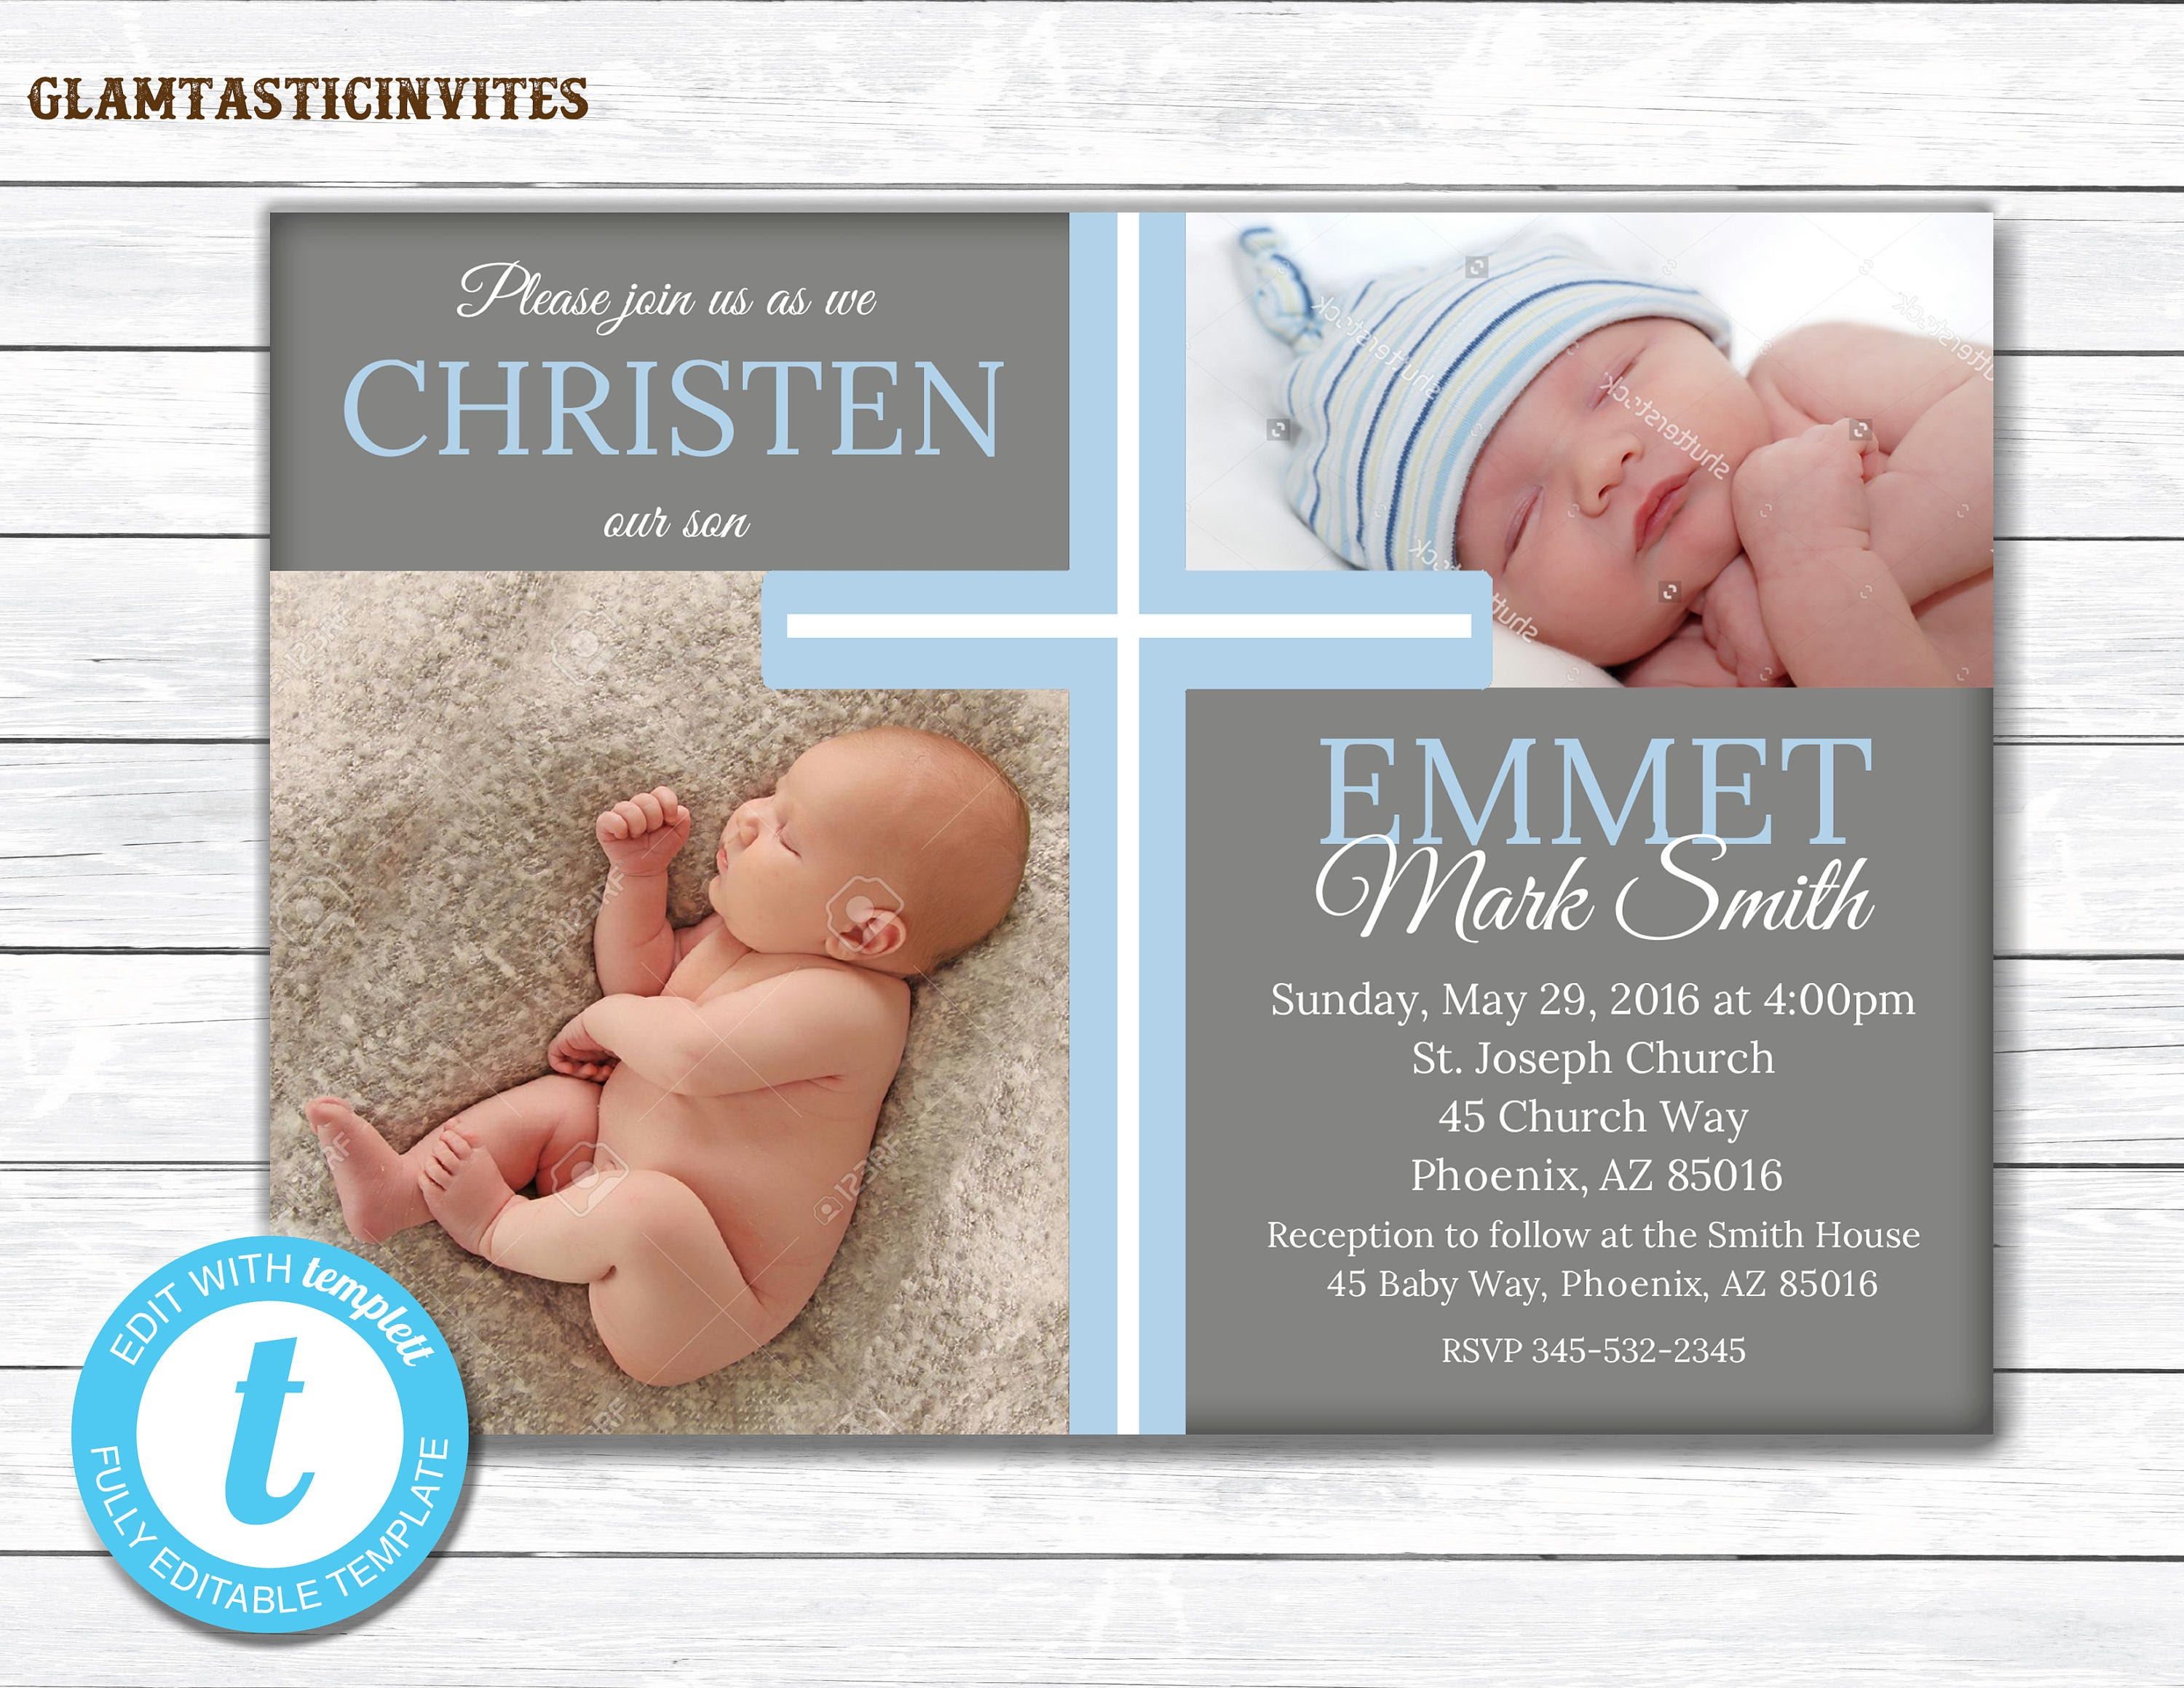 Baptismal invitation for baby boy philippines all the best baptismal invitation marialonghi stopboris Images